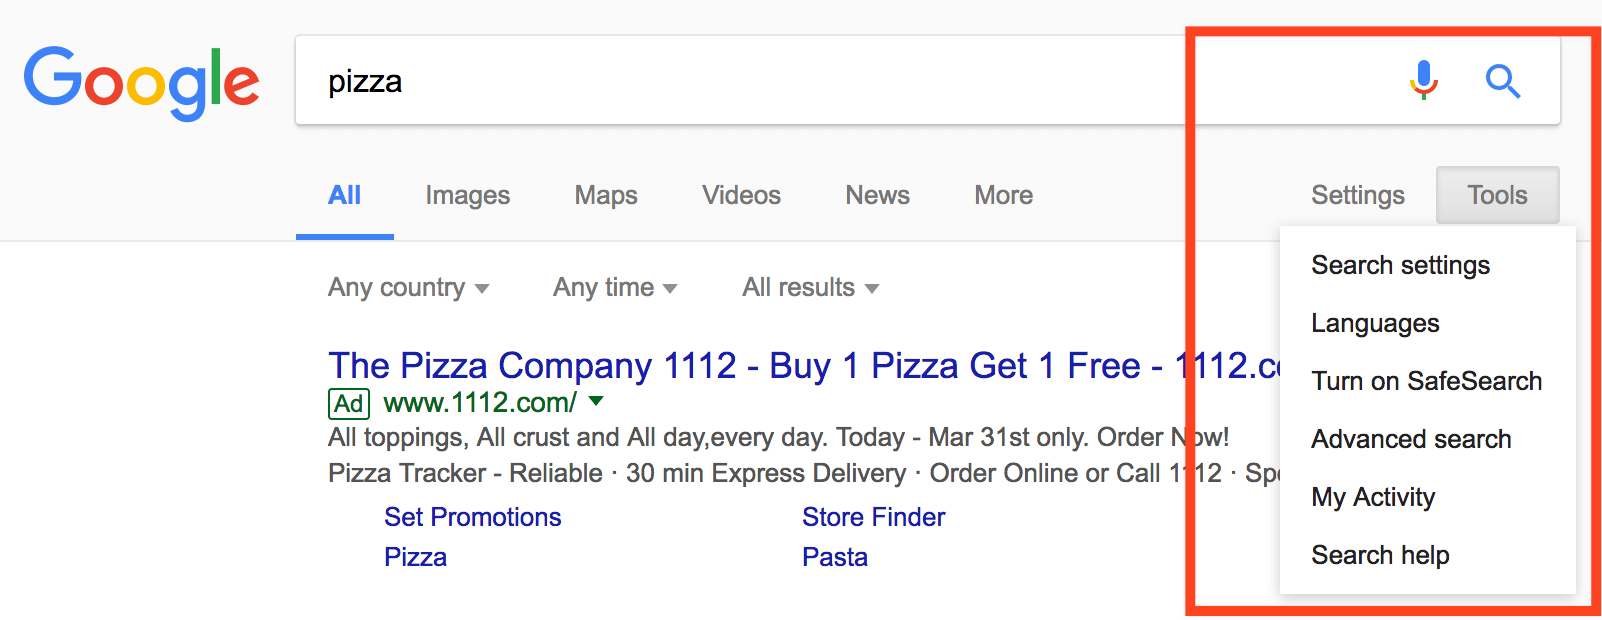 Pizza Search Tools